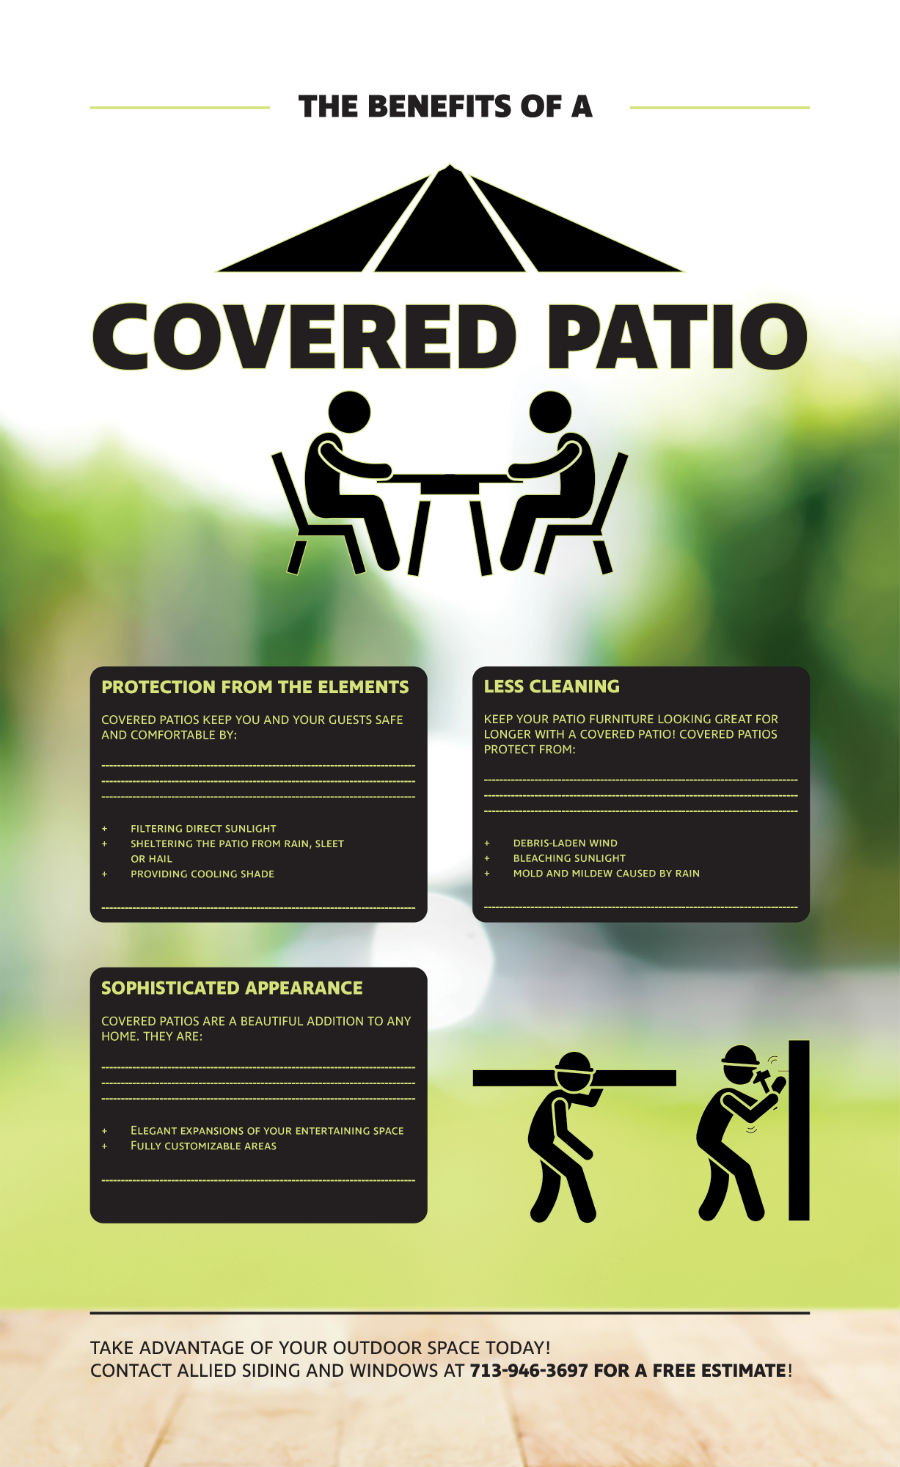 covered patio benefits